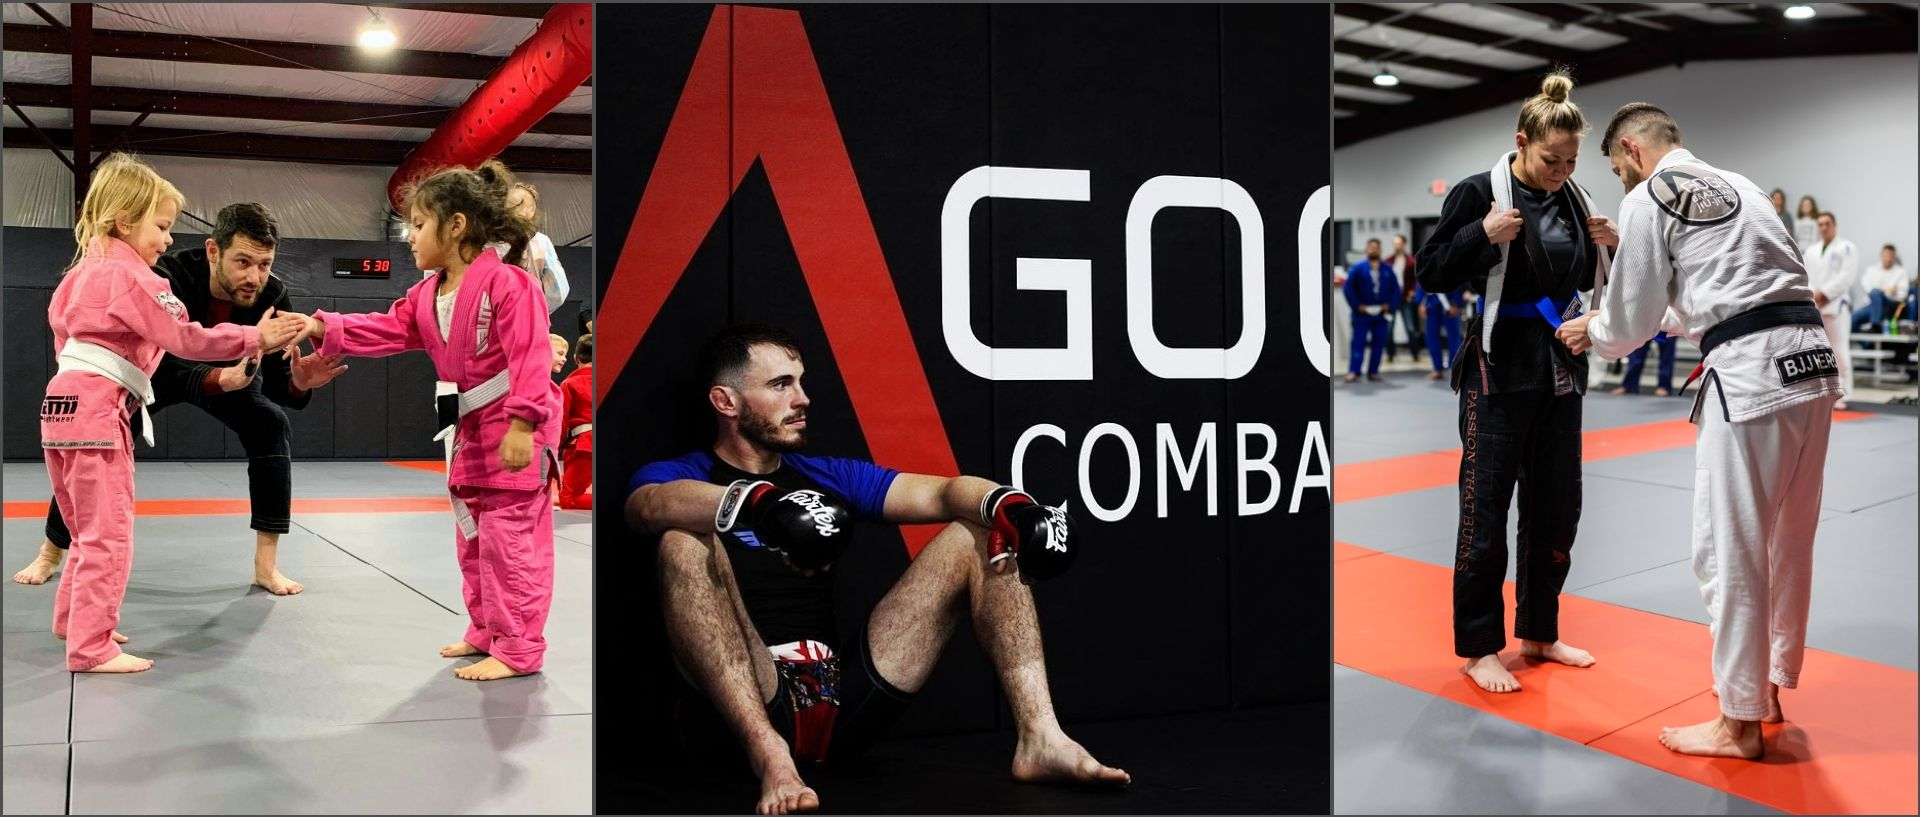 Agoge Combatives - Brazilian Jiu-Jitsu & Chattanooga Krav Maga photo